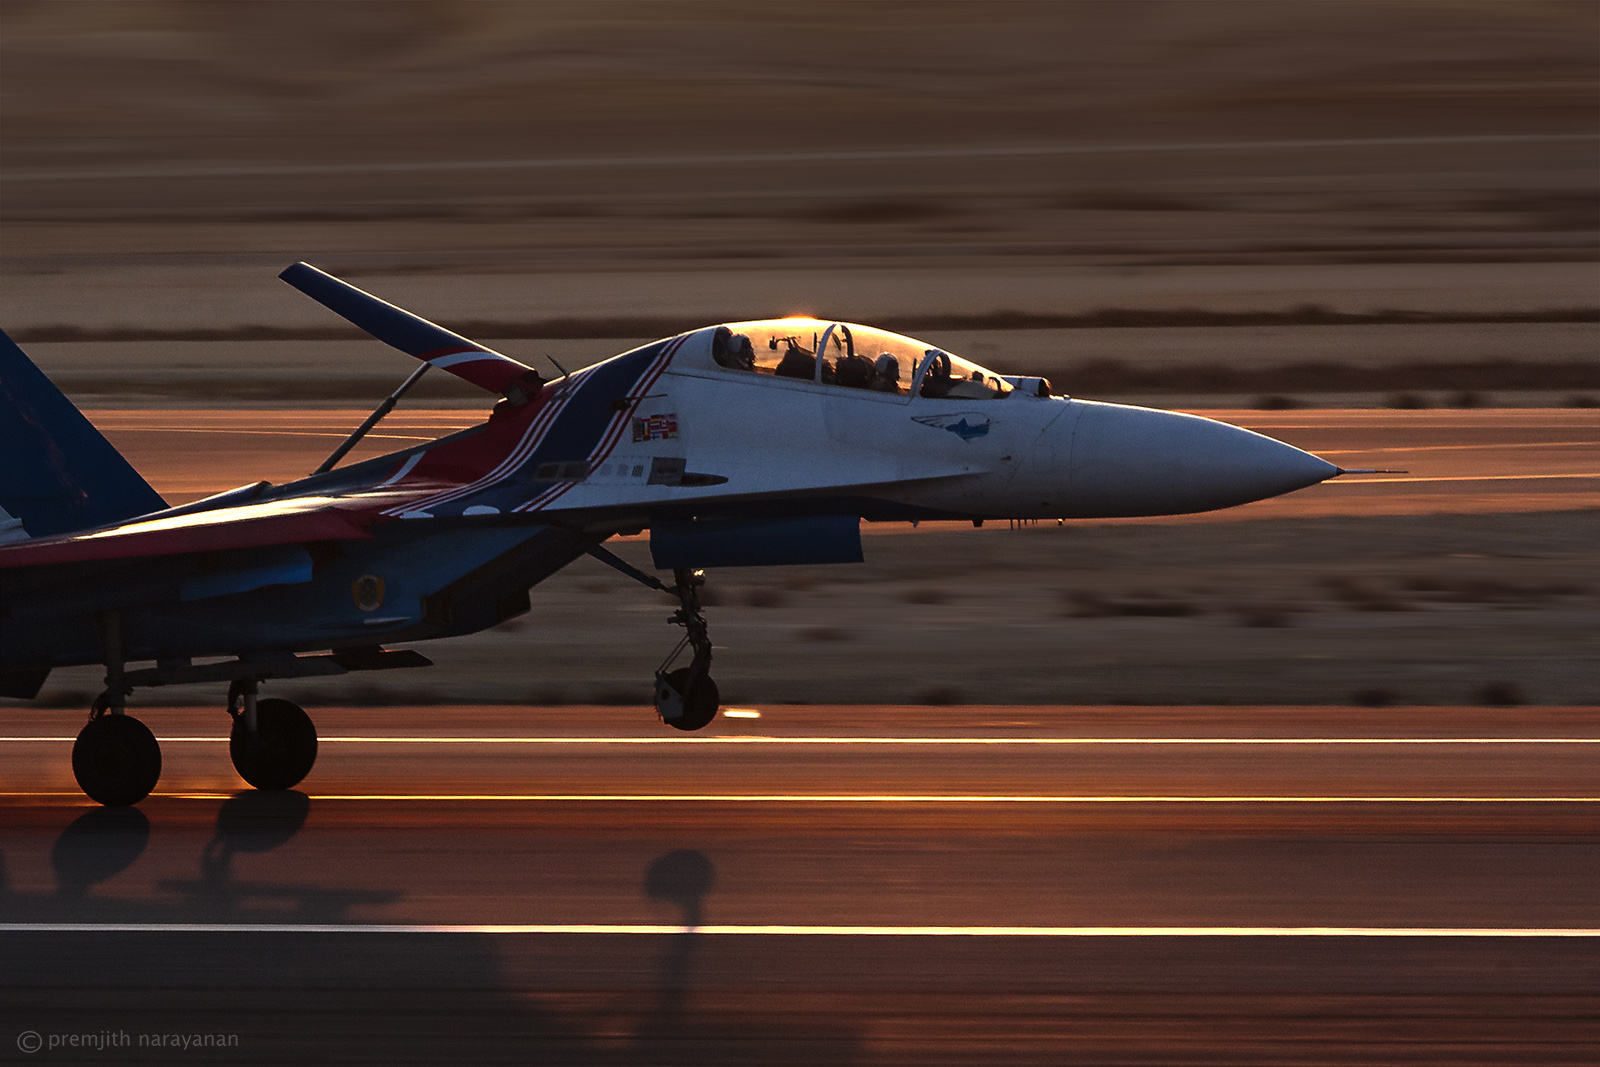 The SUKHOI touching down..